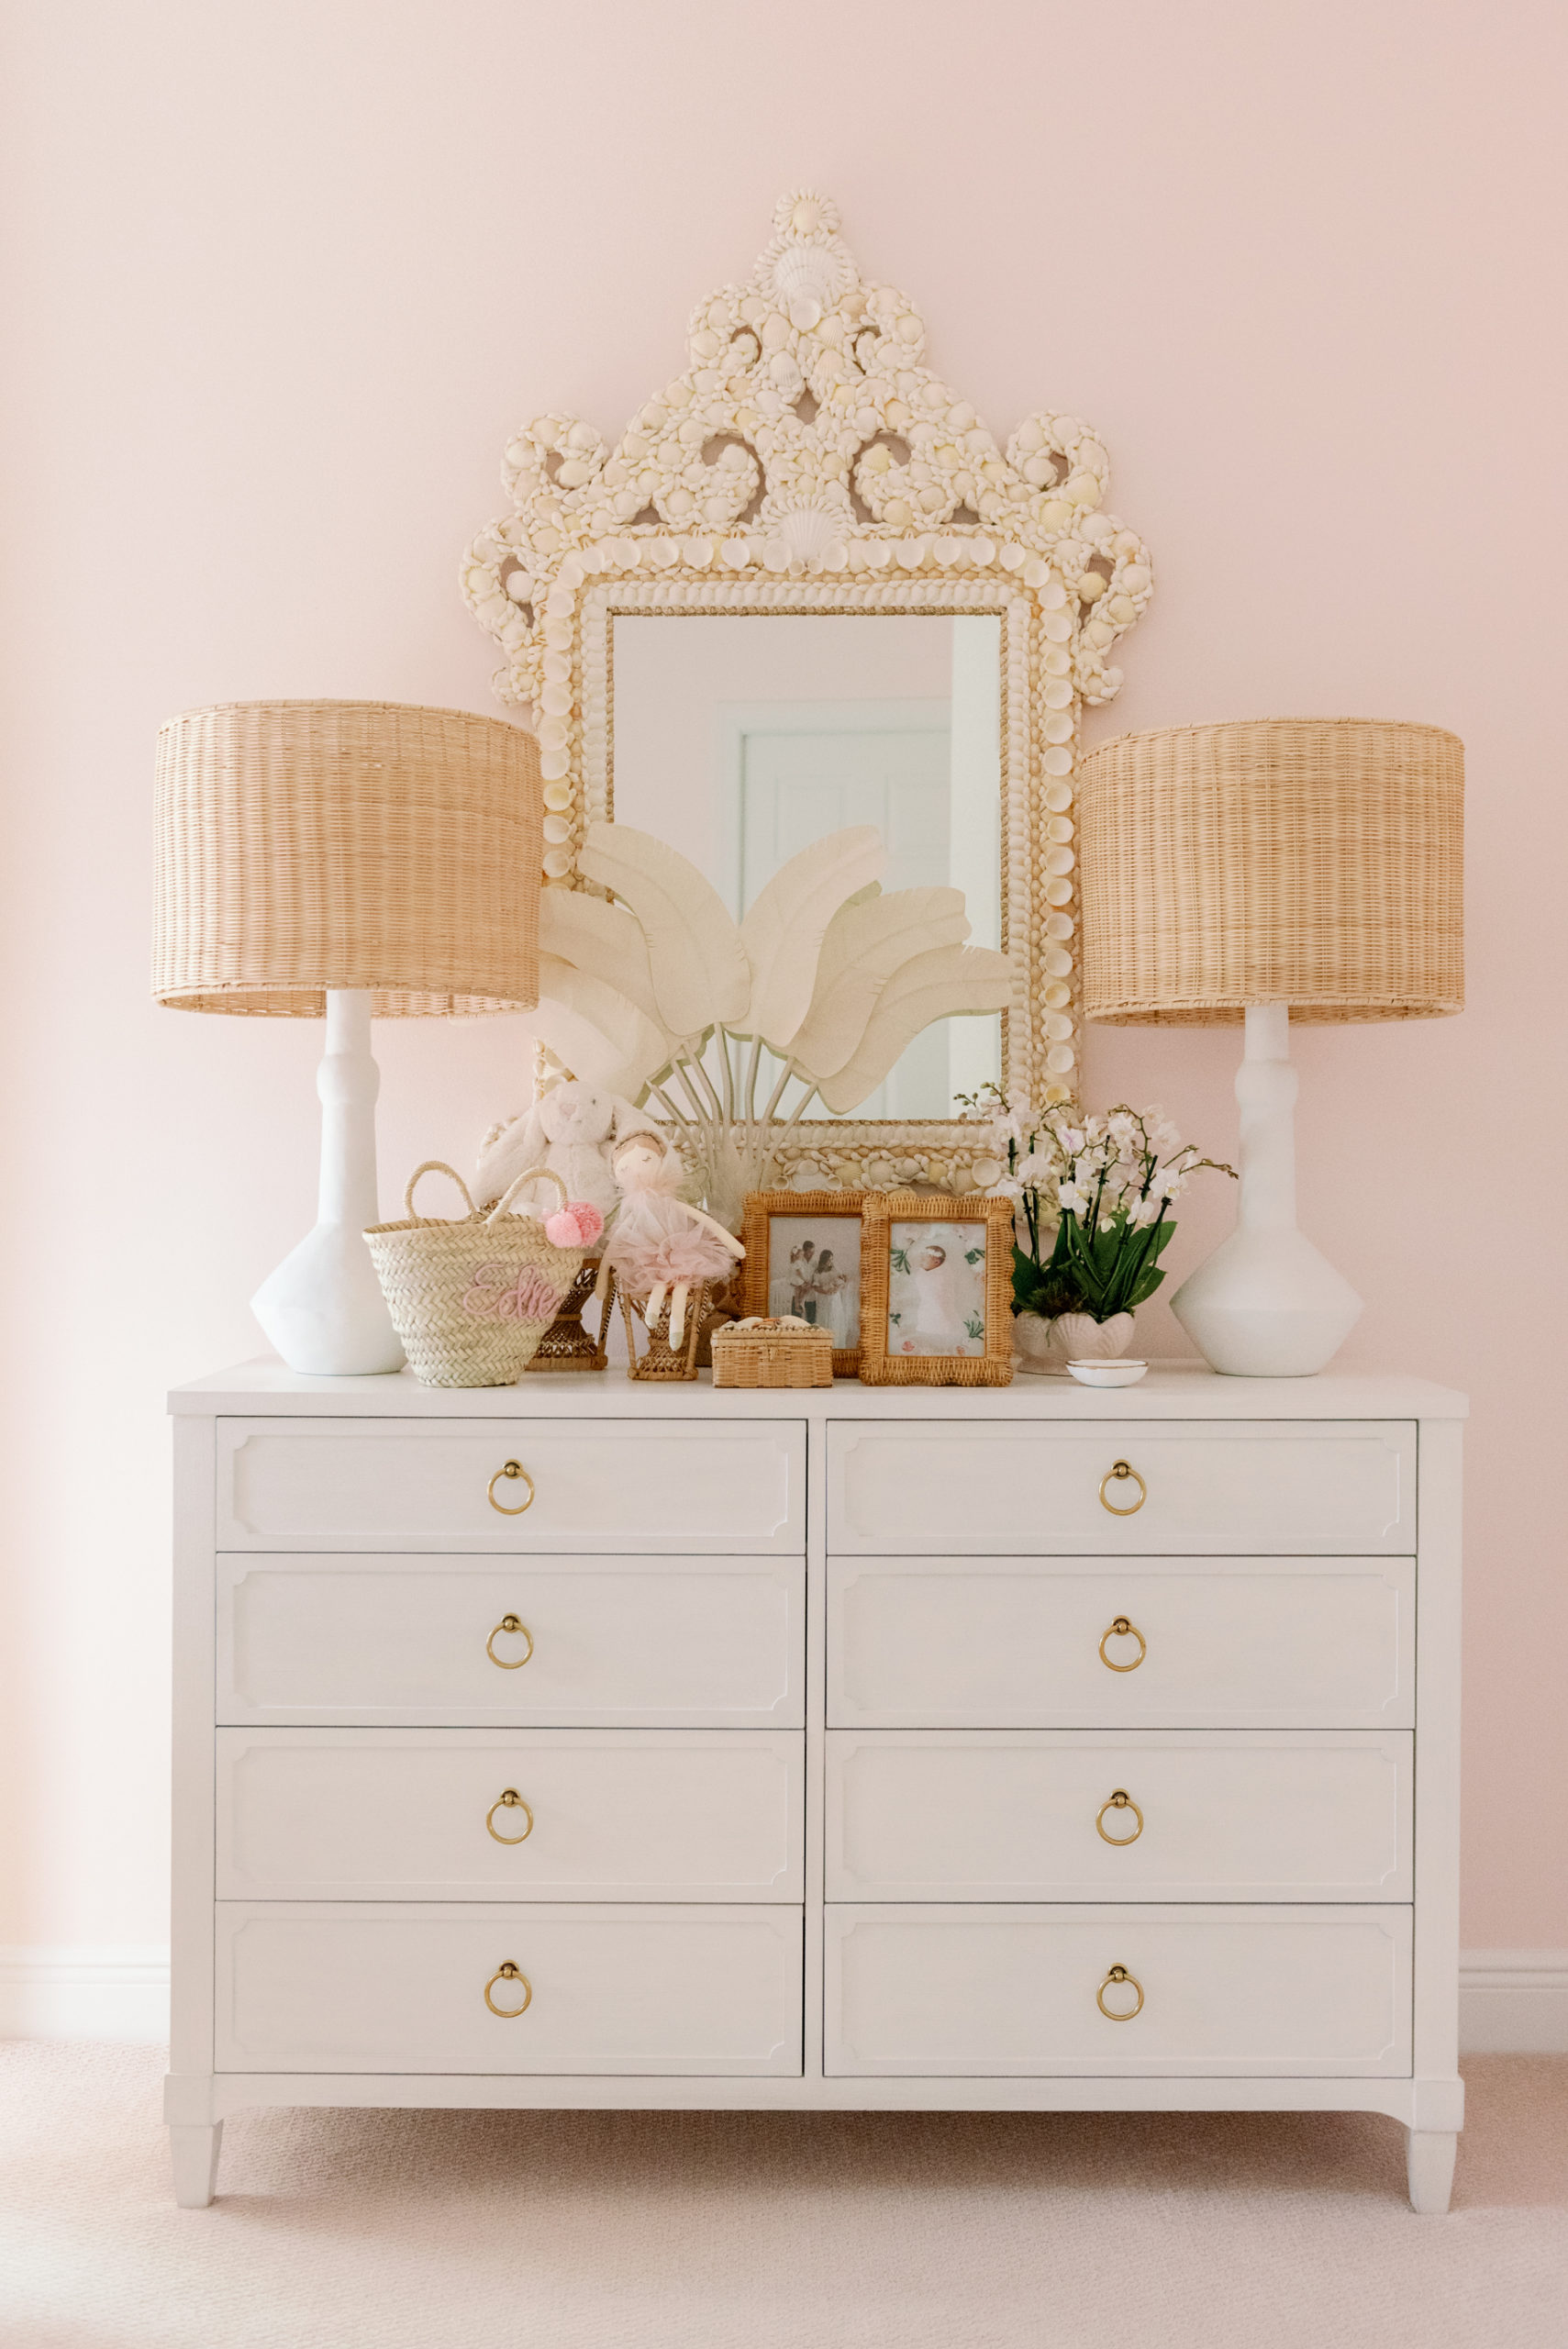 Sea Shell Mirror over Dresser in Palm Beach Lately Nursery